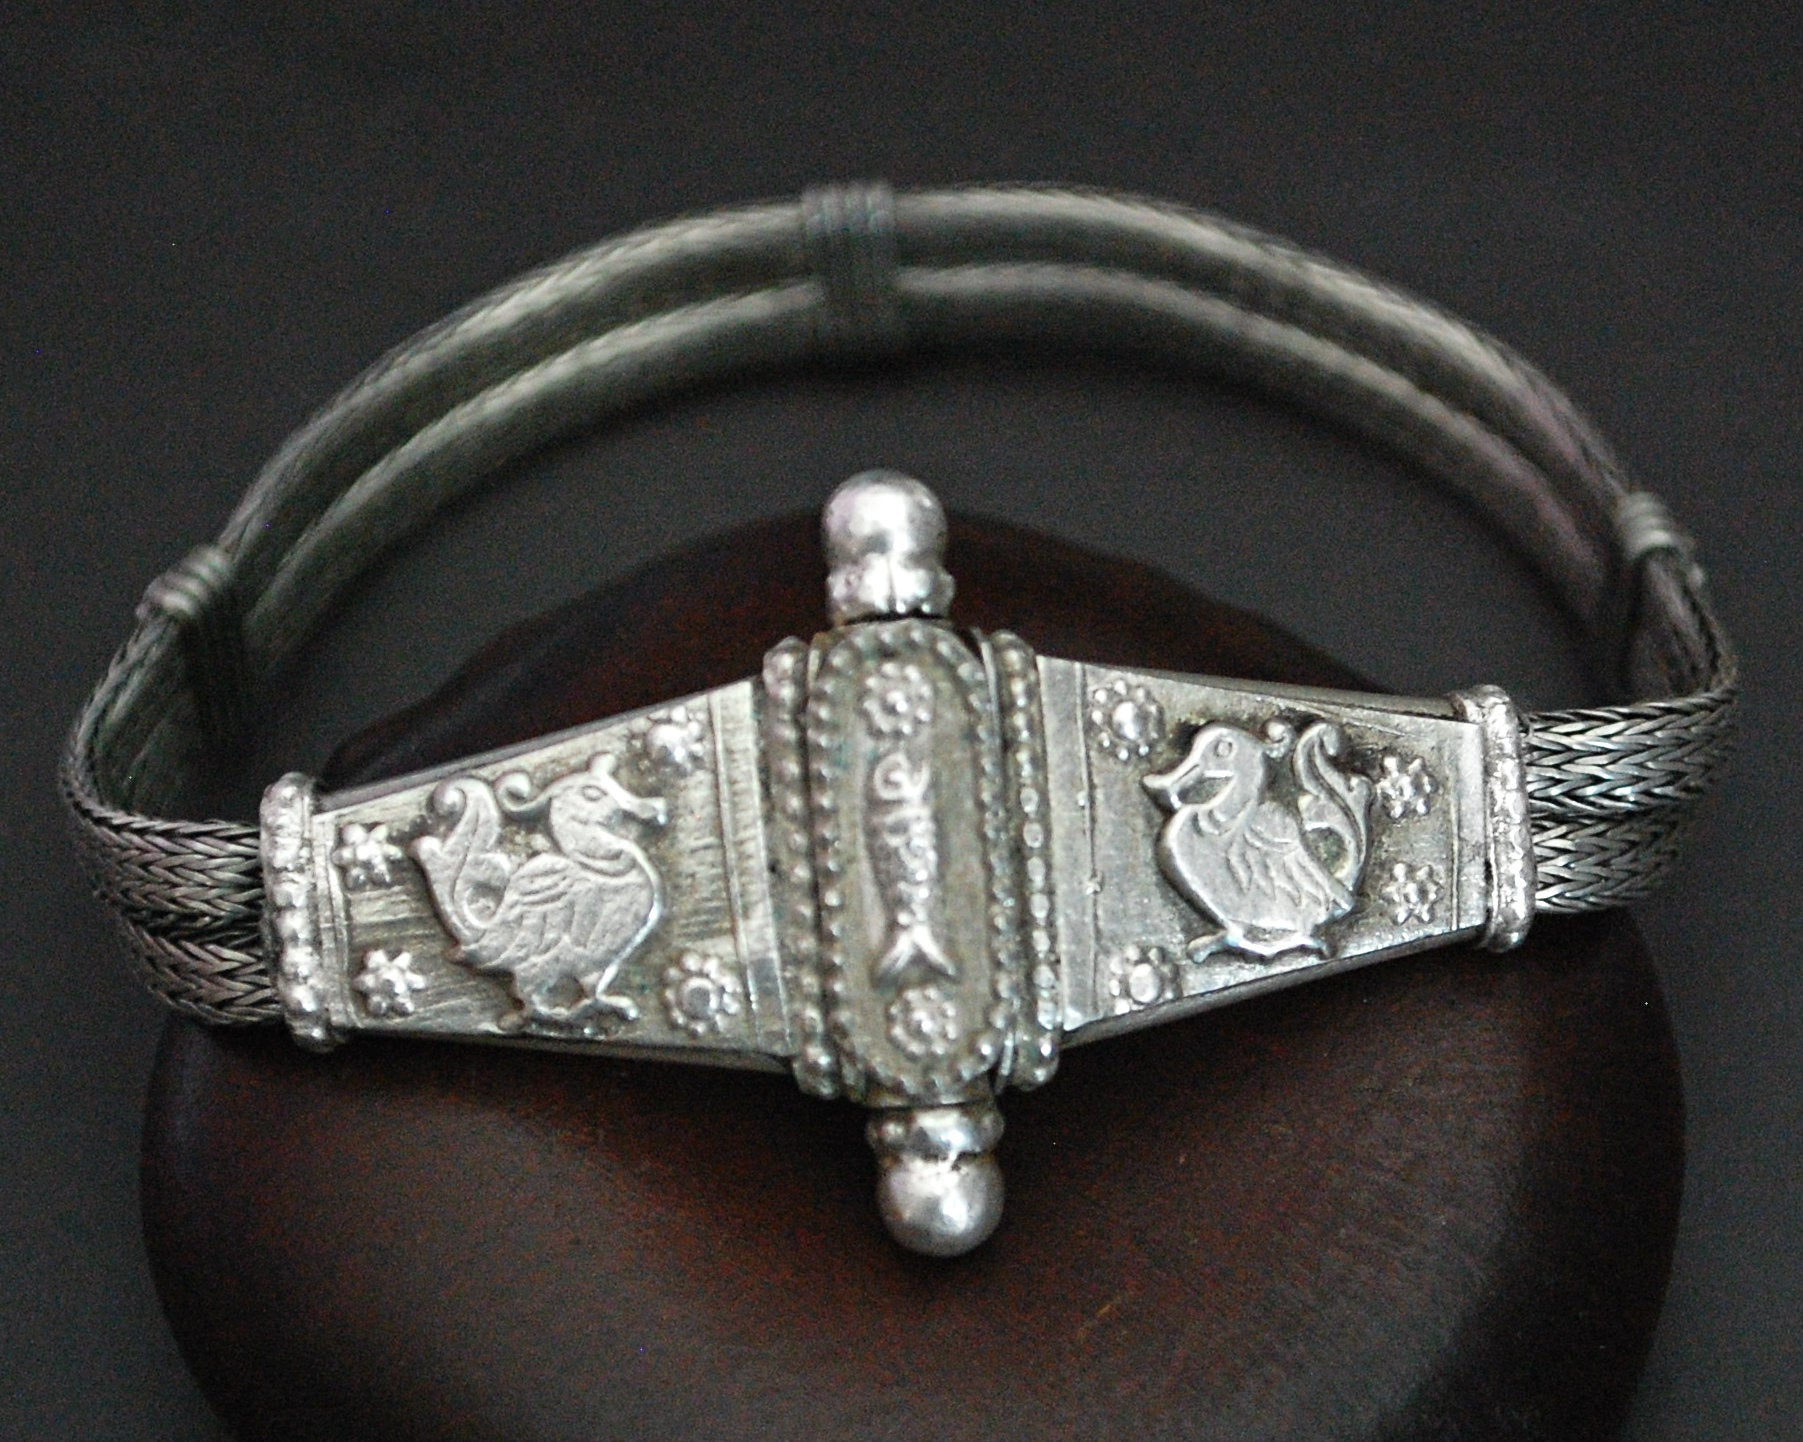 Rajasthani Snake Chain Bracelet with Fish and Peacocks